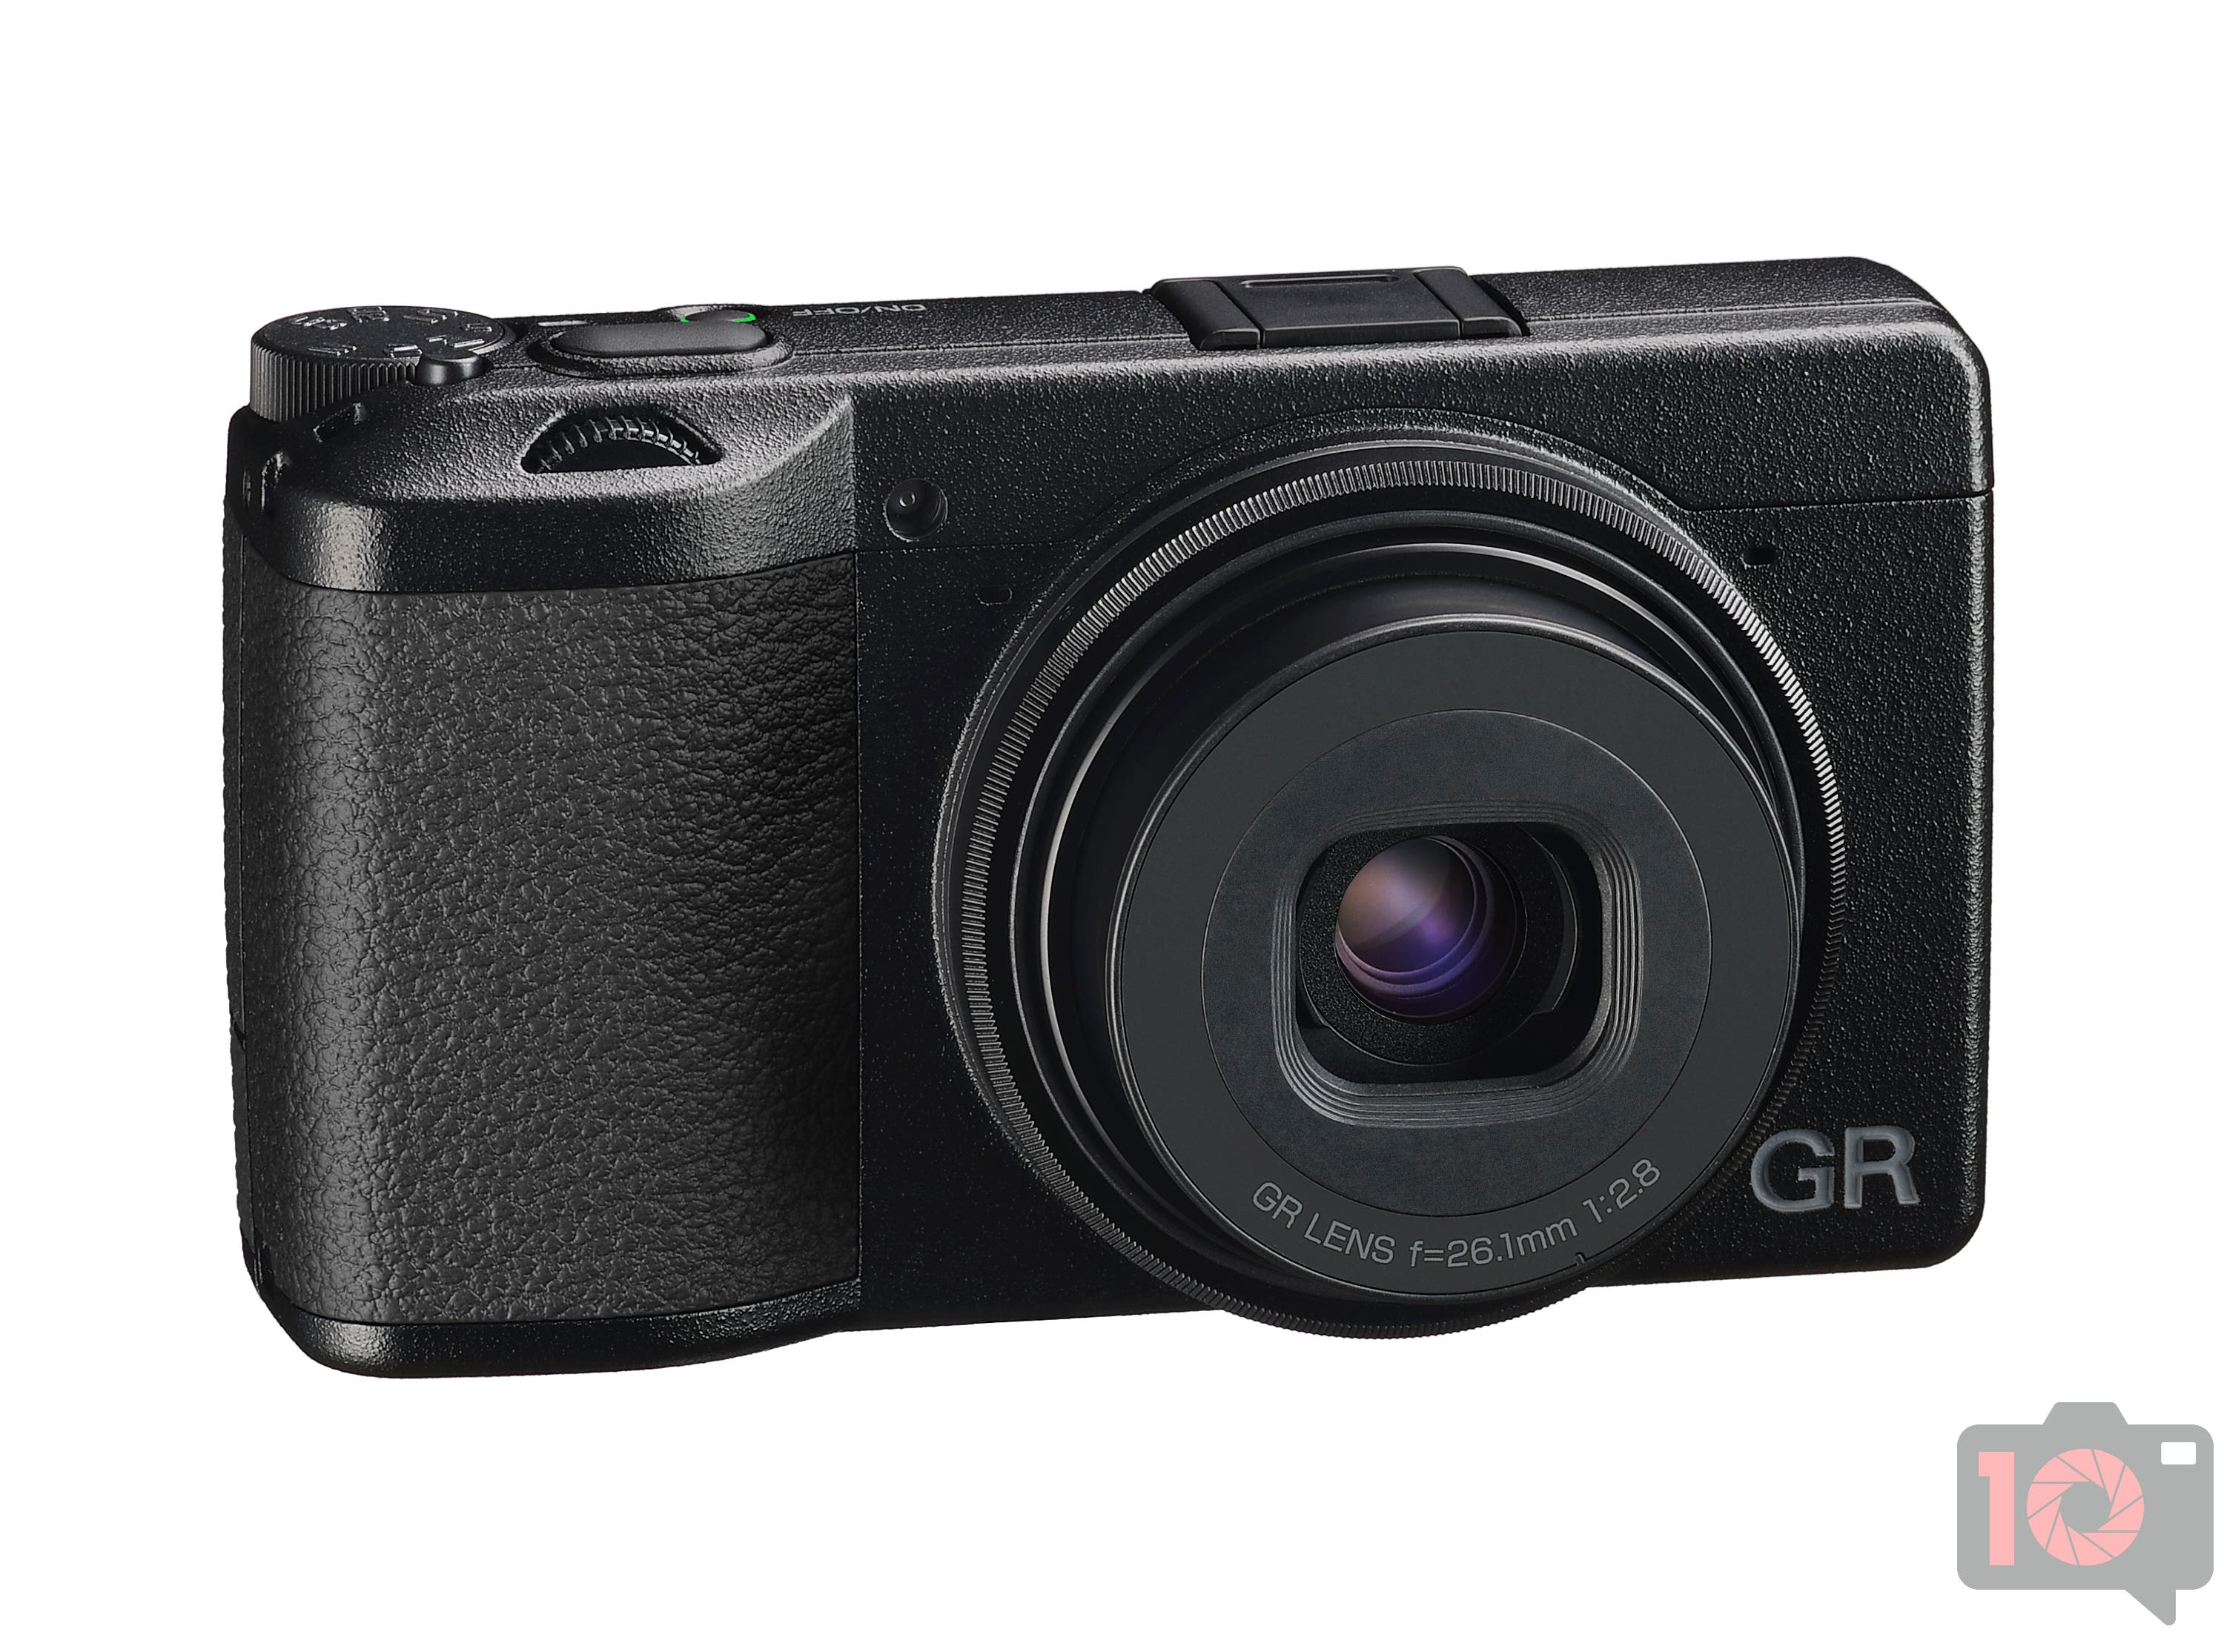 The Missing Upgrade in the Ricoh GR IIIx